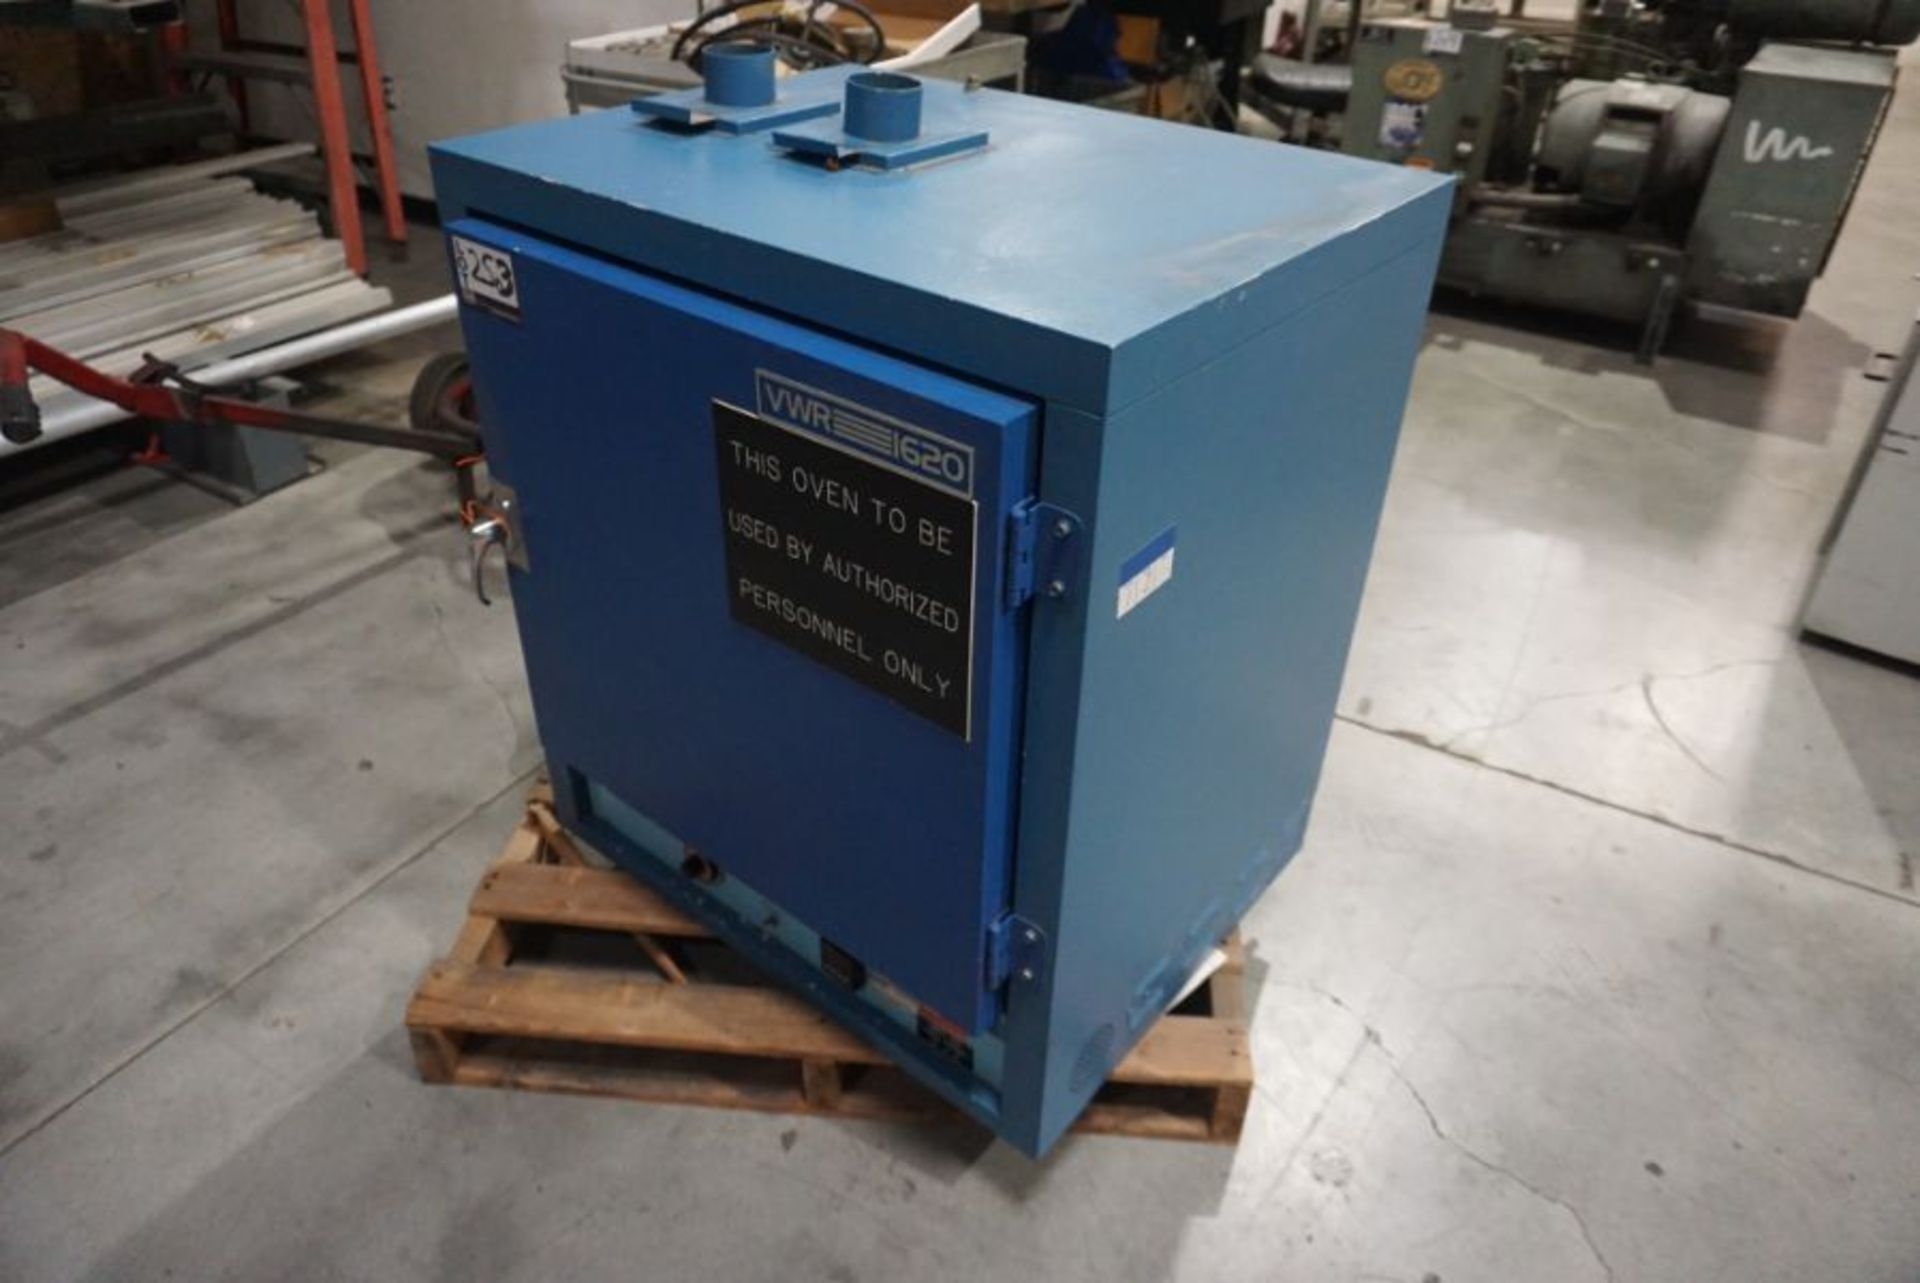 VWR-1620 Oven - Image 2 of 3